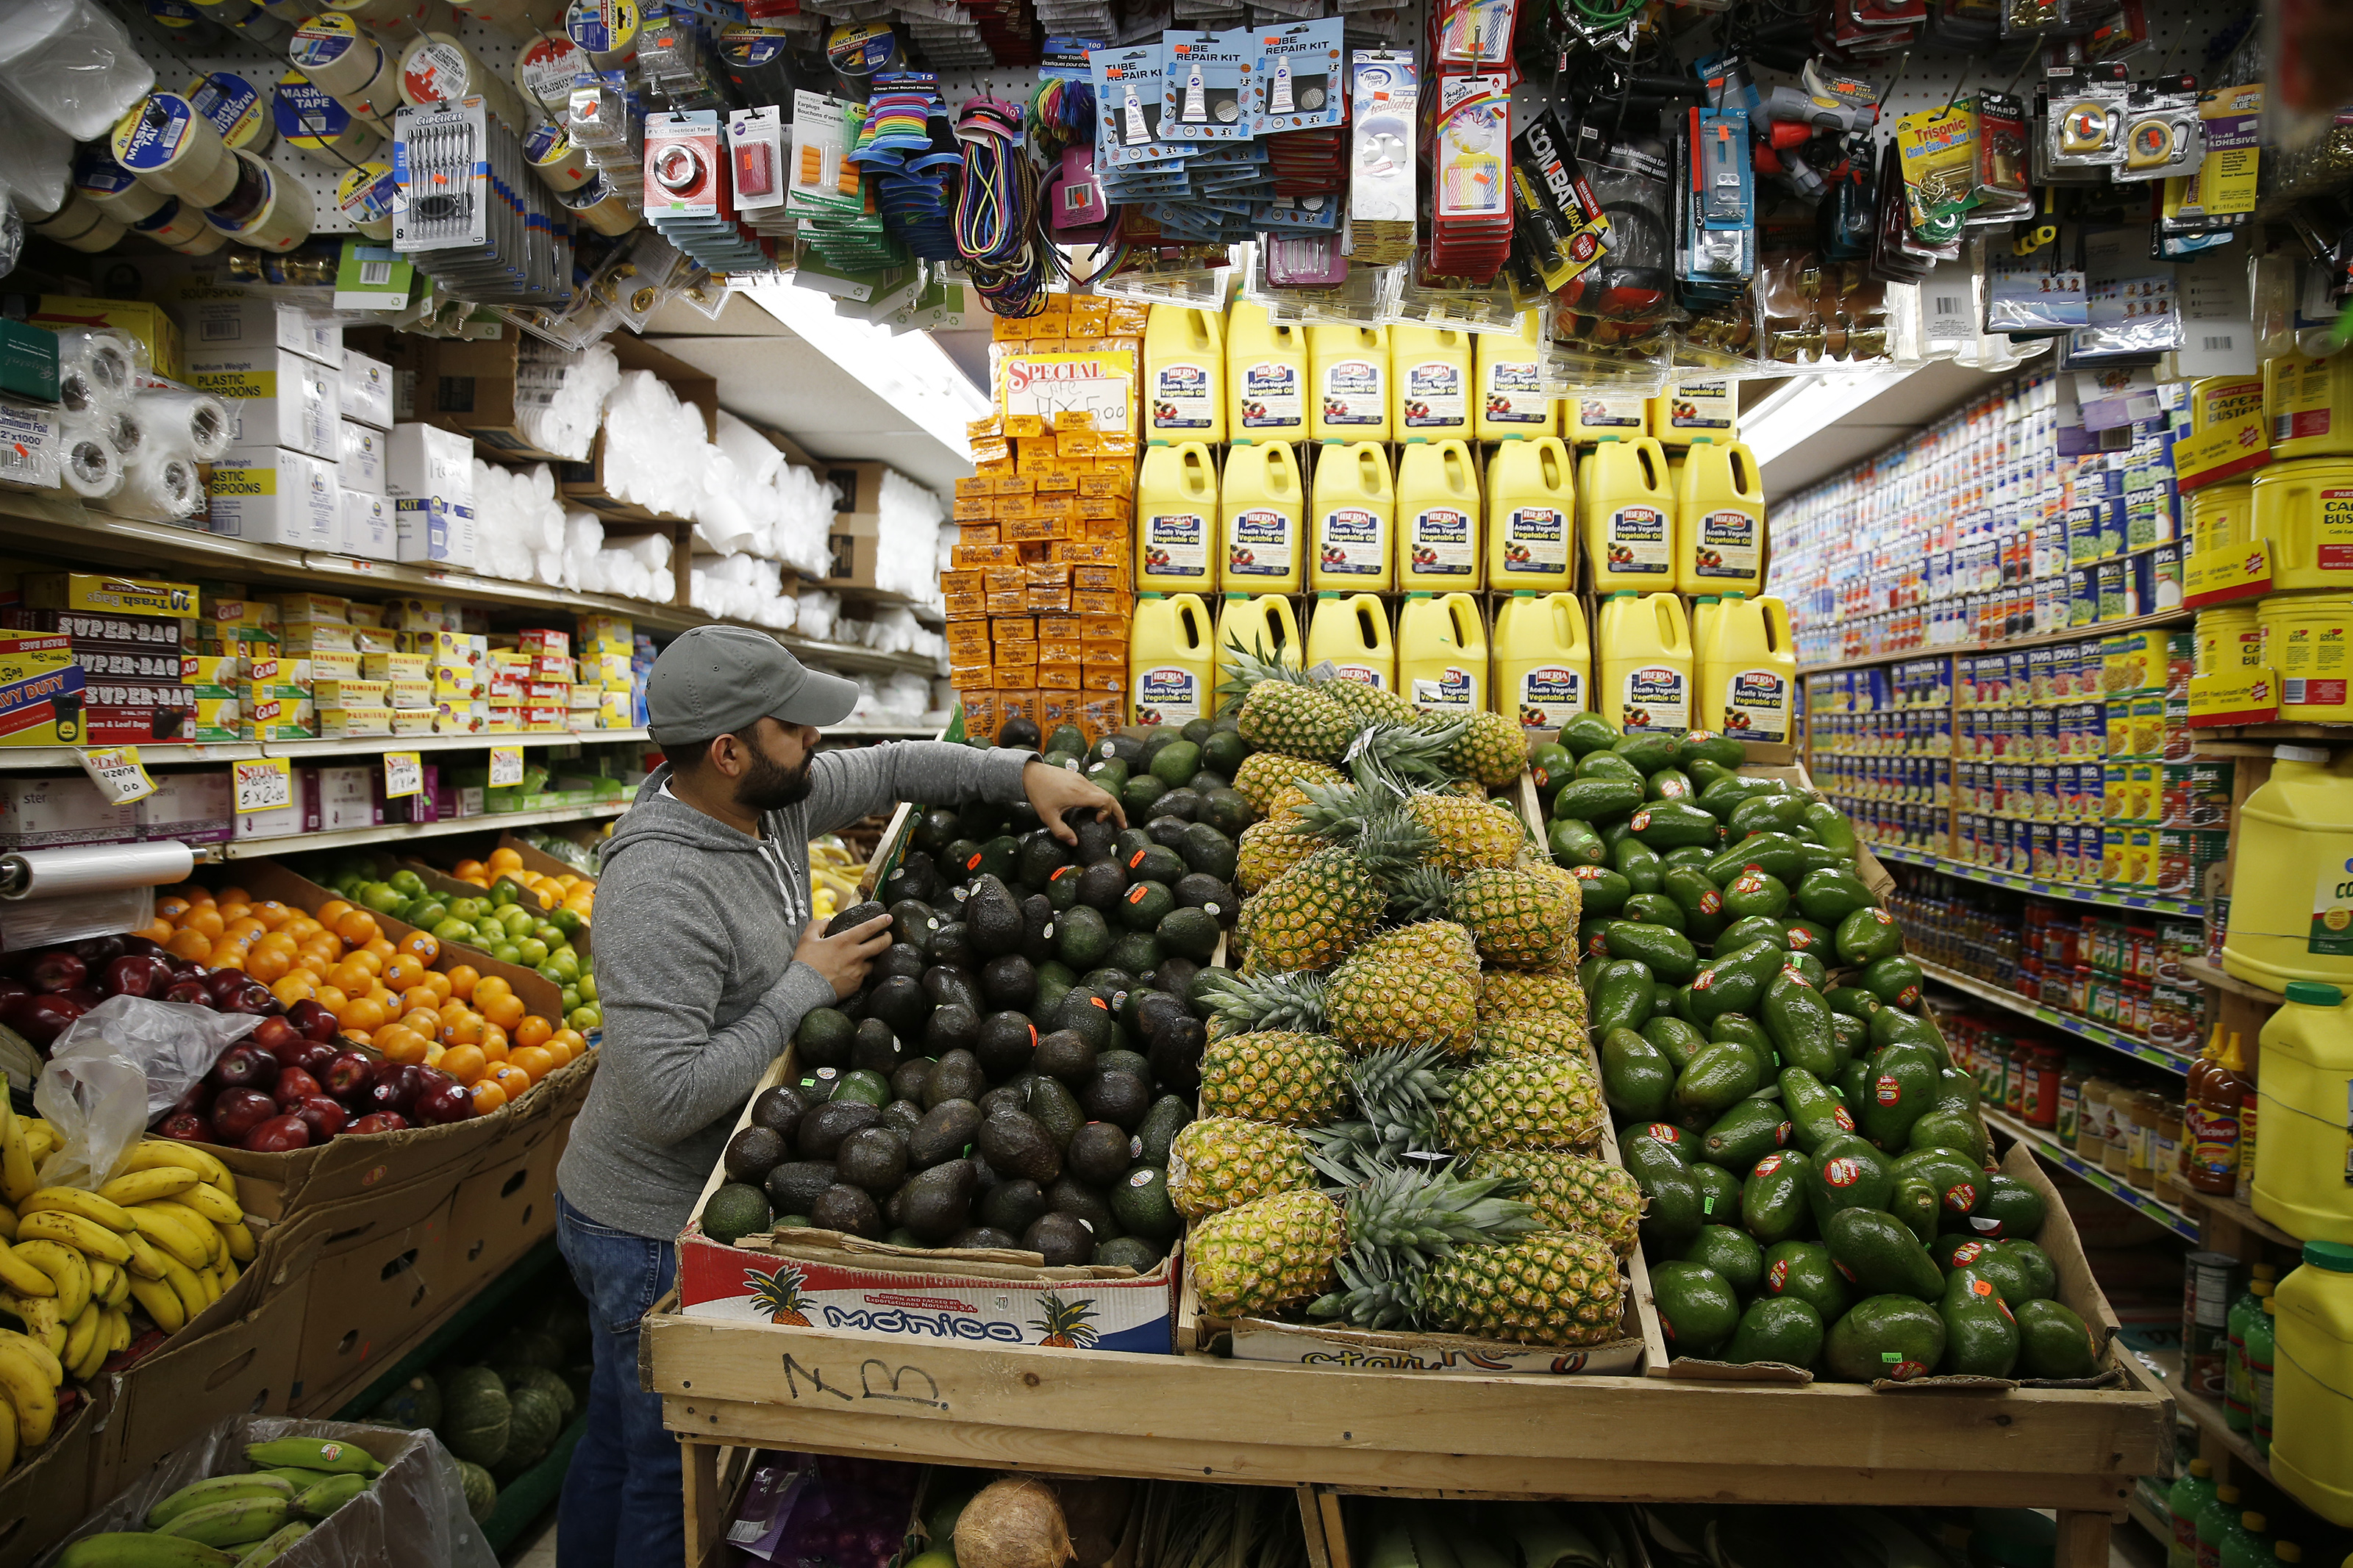 In Lawrence, bodegas now carry healthier options - The